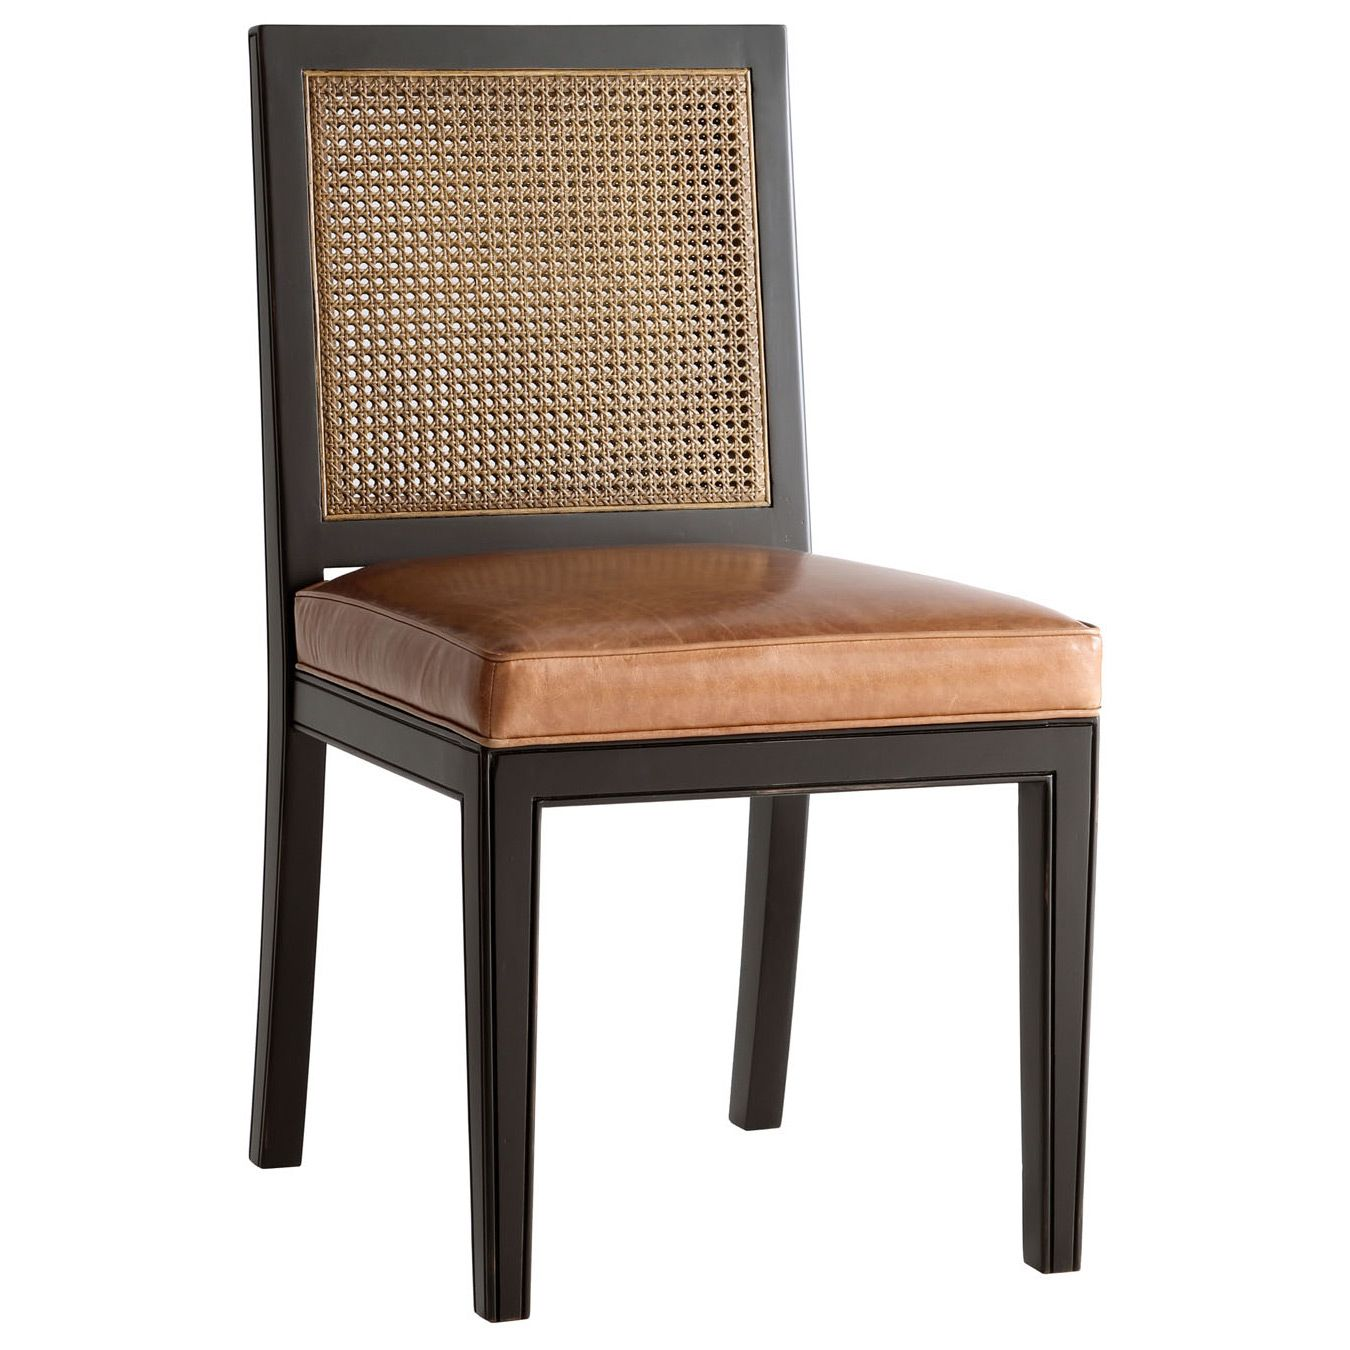 Redford House Oliver Side Chair @Layla Grayce $825 Finish And Fabric Options